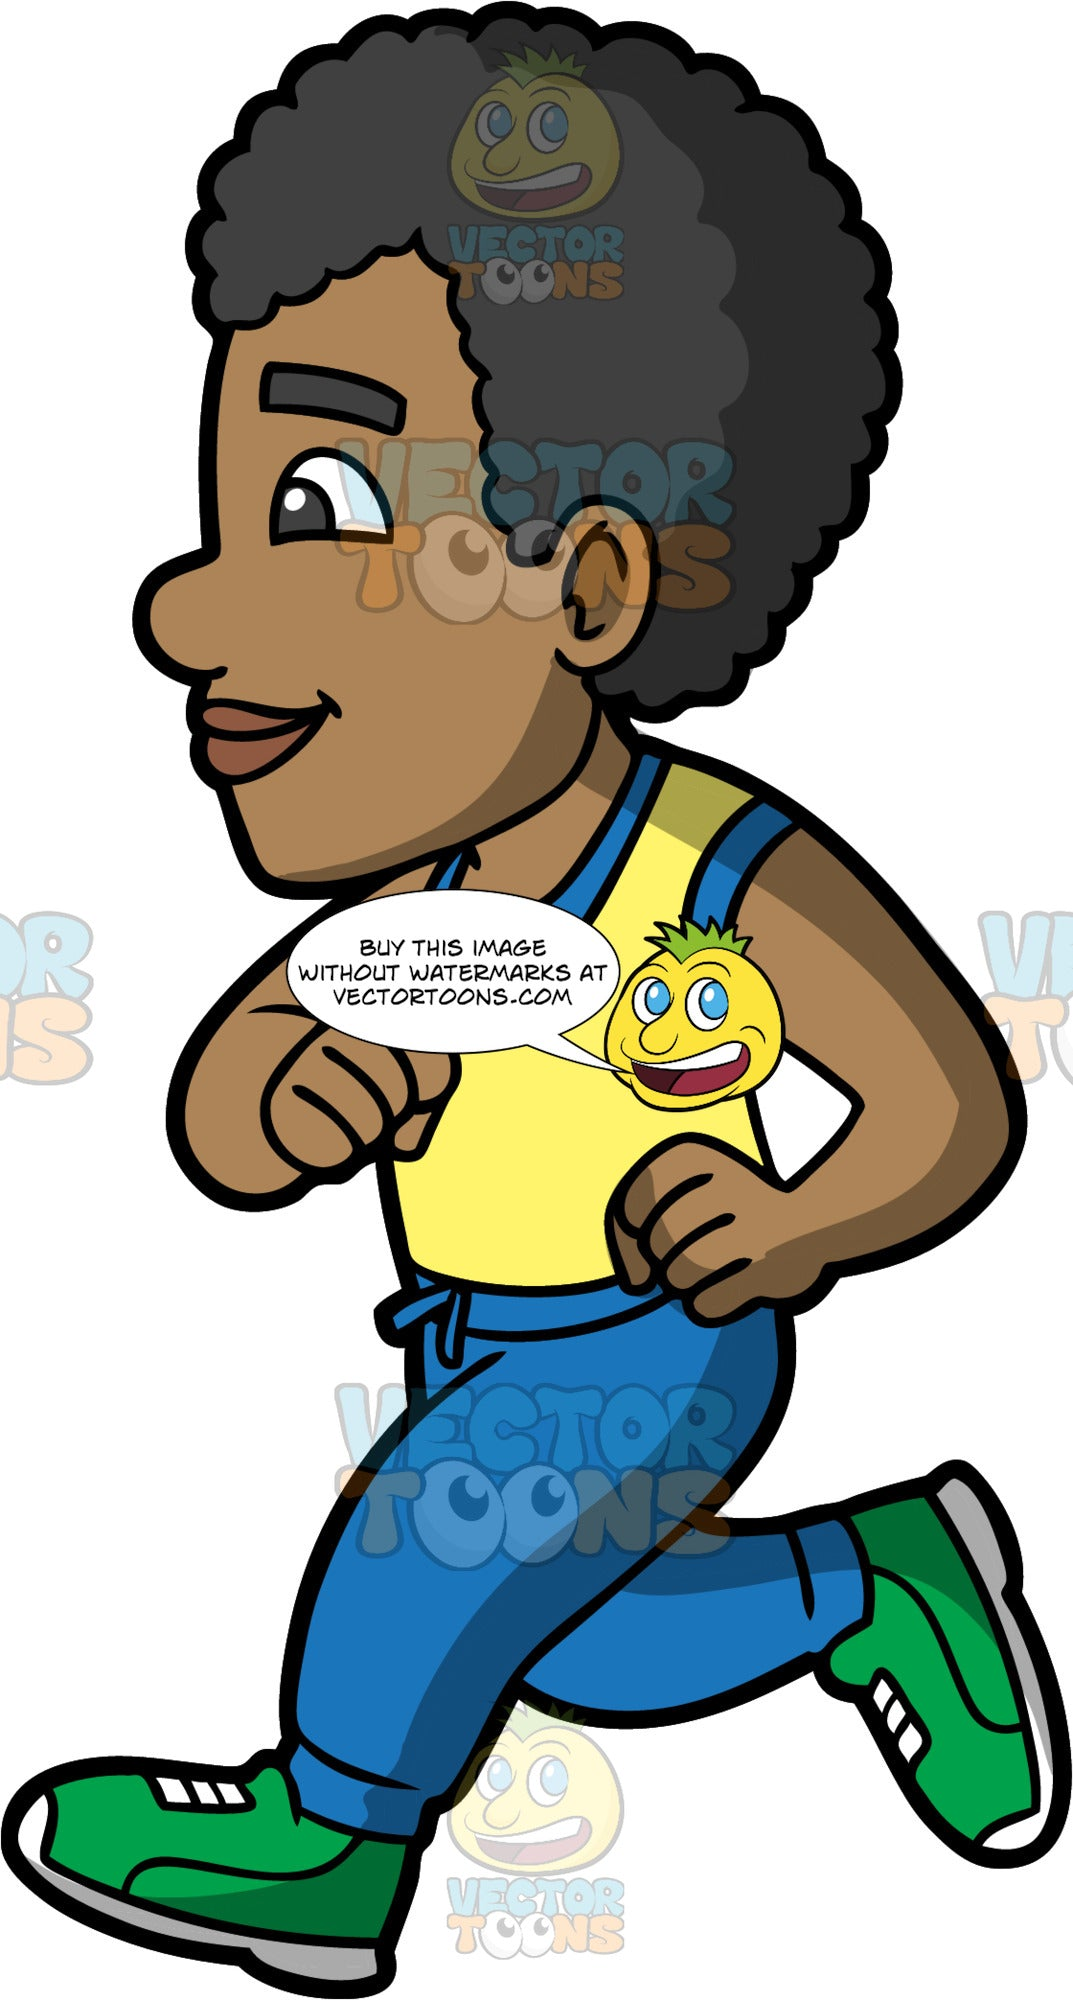 Jimmy Out For A Run. A black man wearing blue track pants, a yellow with blue tank top, and green running shoes, concentrating while going for a run